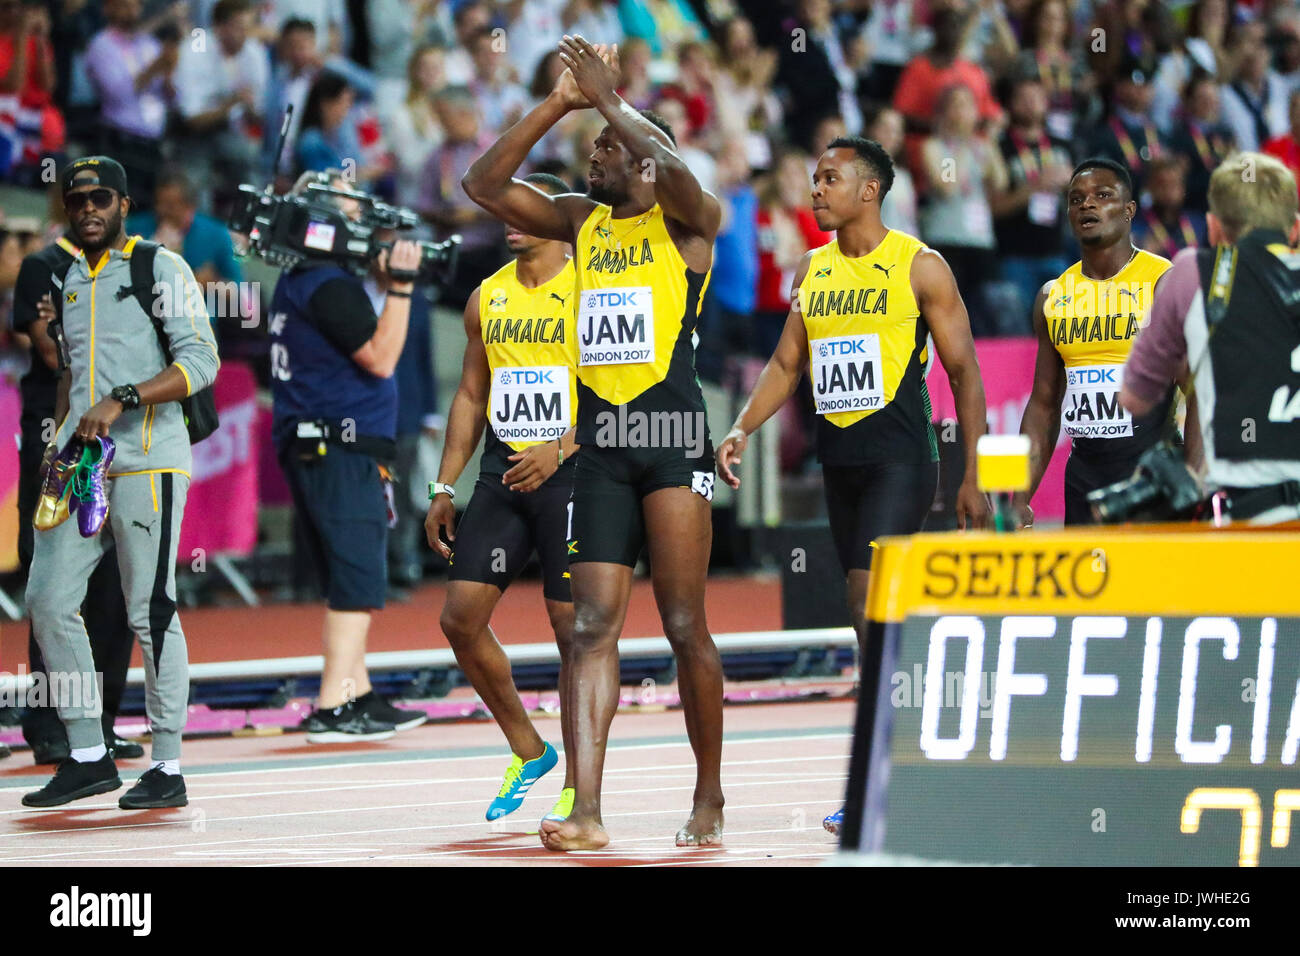 London, UK. 12th Aug, 2017. London, August 12 2017 . Usai Bolt applauds the crowd as he crosses the finish line assisted by his teammates after suffering an injury to his hamstring as he ran the final 100m in the men's 4x 100m relay on day nine of the IAAF London 2017 world Championships at the London Stadium. Credit: Paul Davey/Alamy Live News - Stock Image